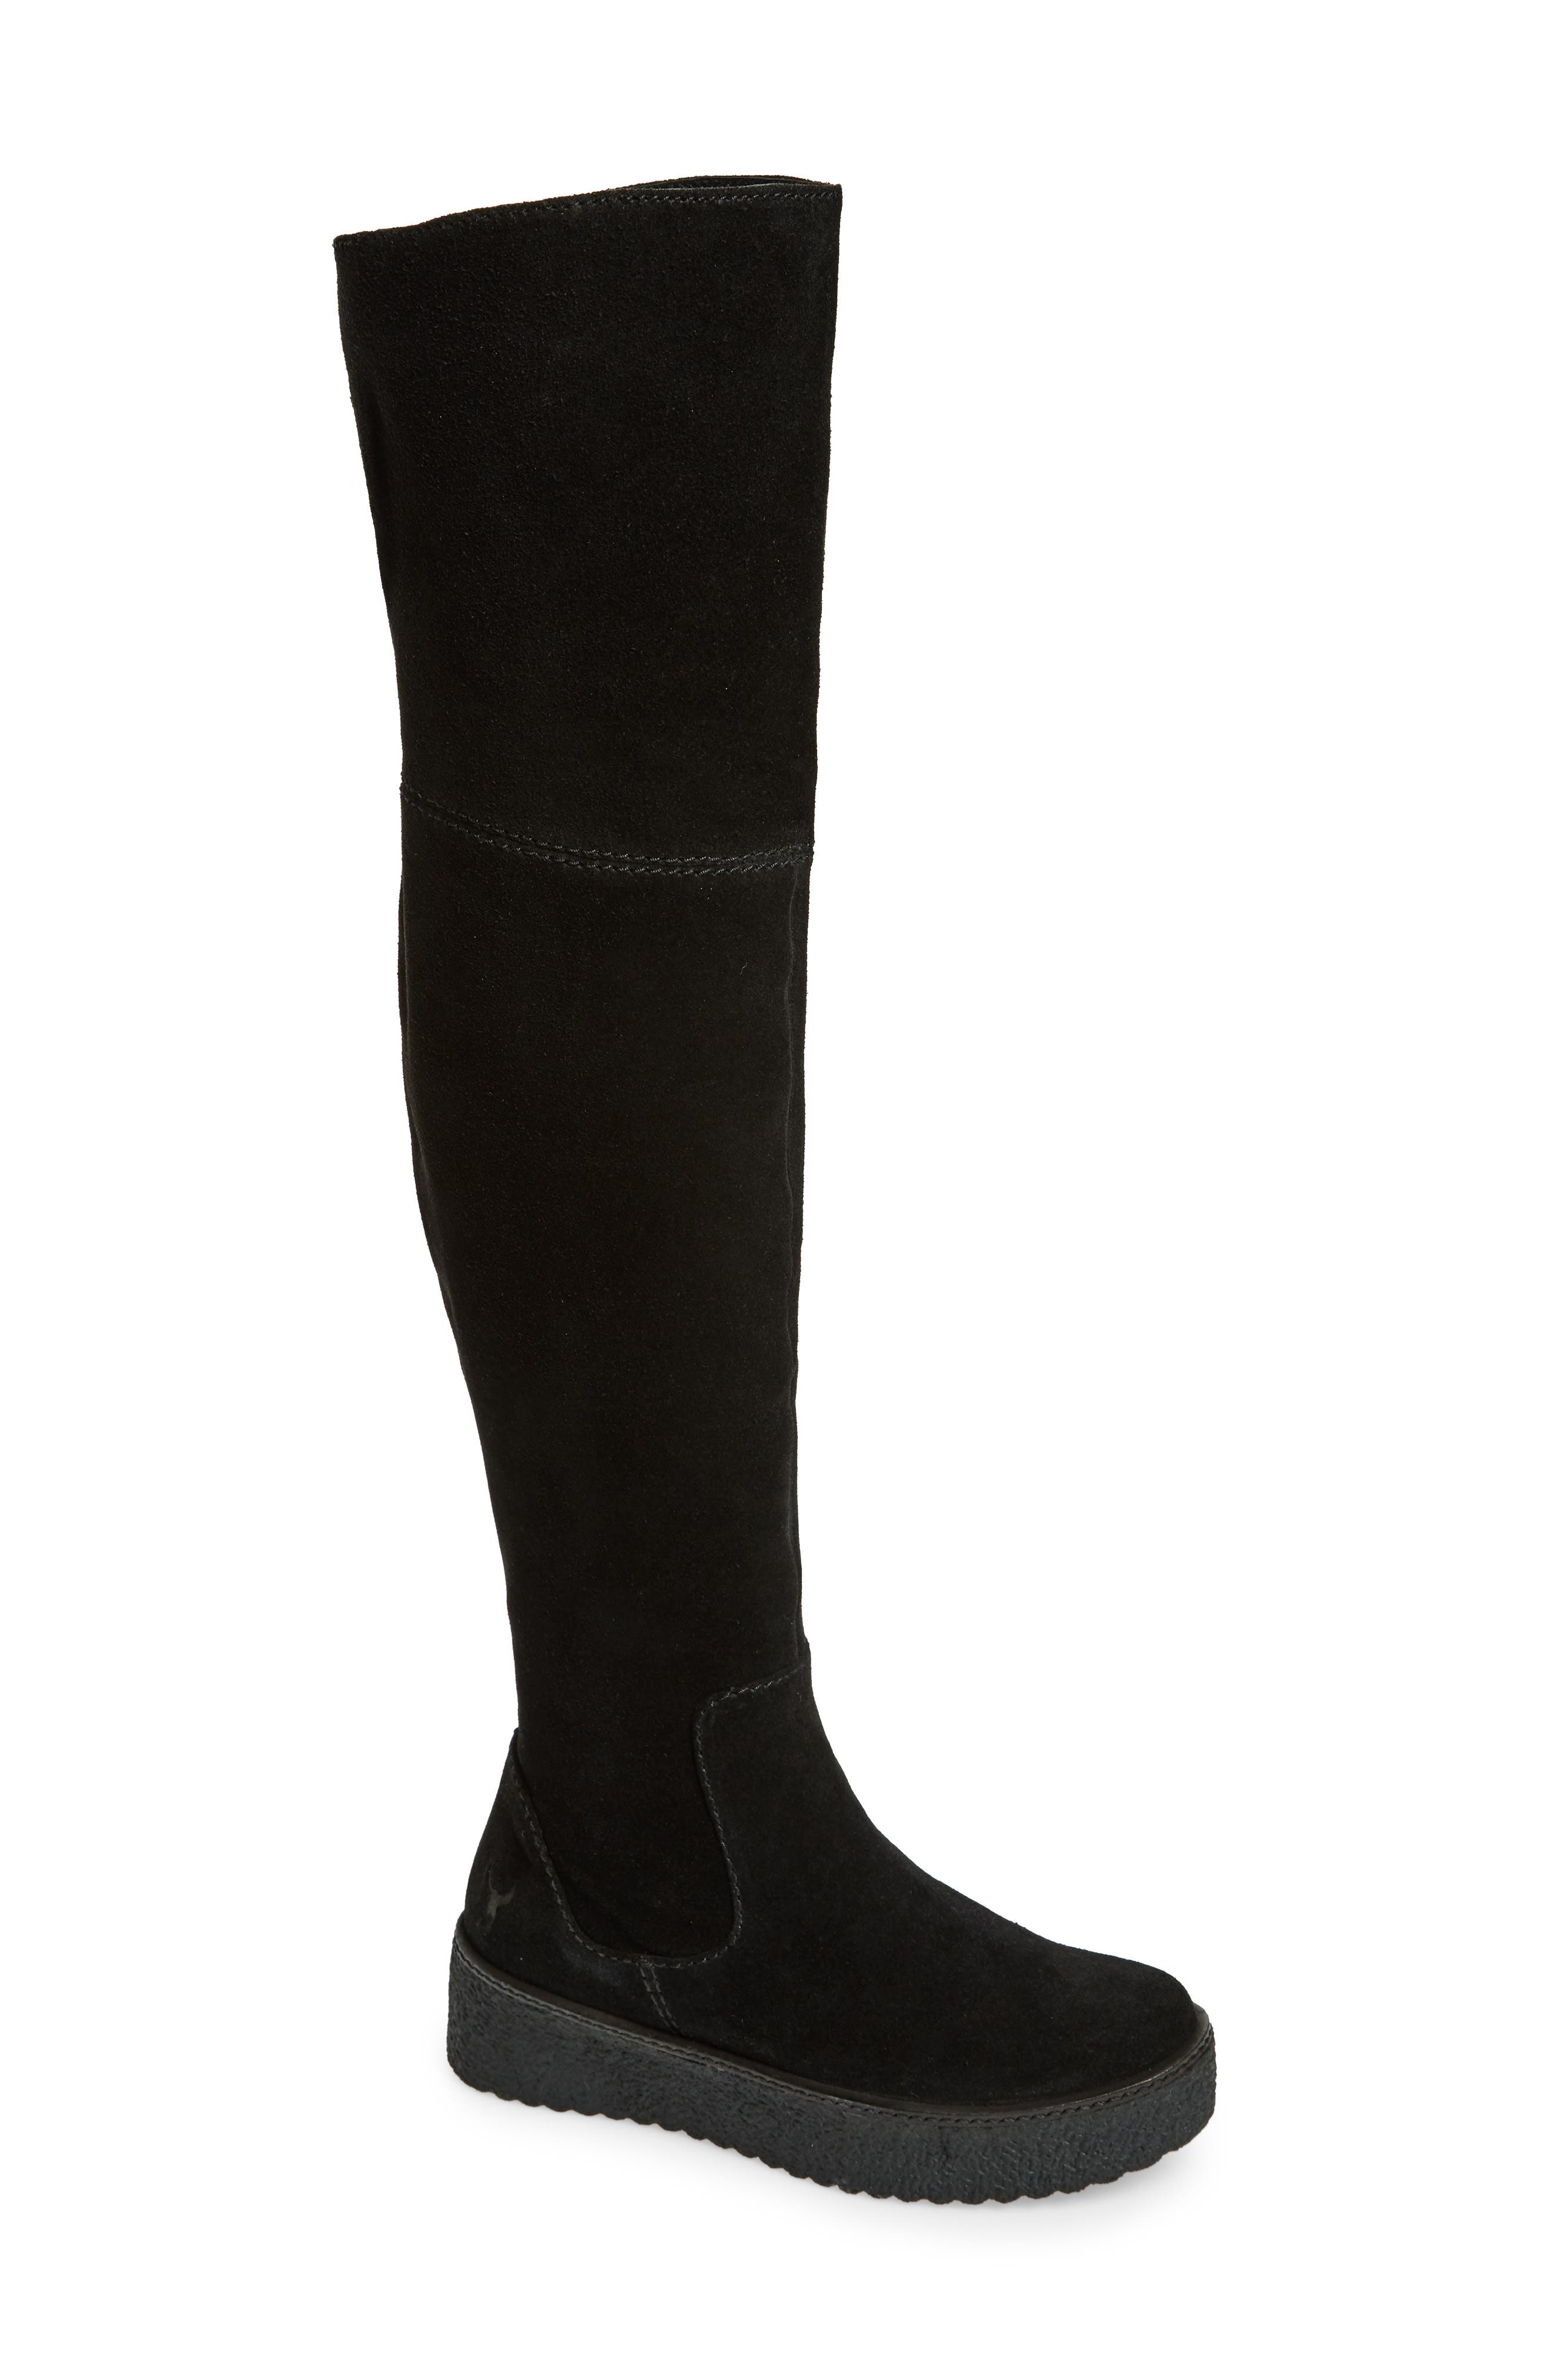 Tazza Over the Knee Boot,                             Main thumbnail 1, color,                             Black Suede